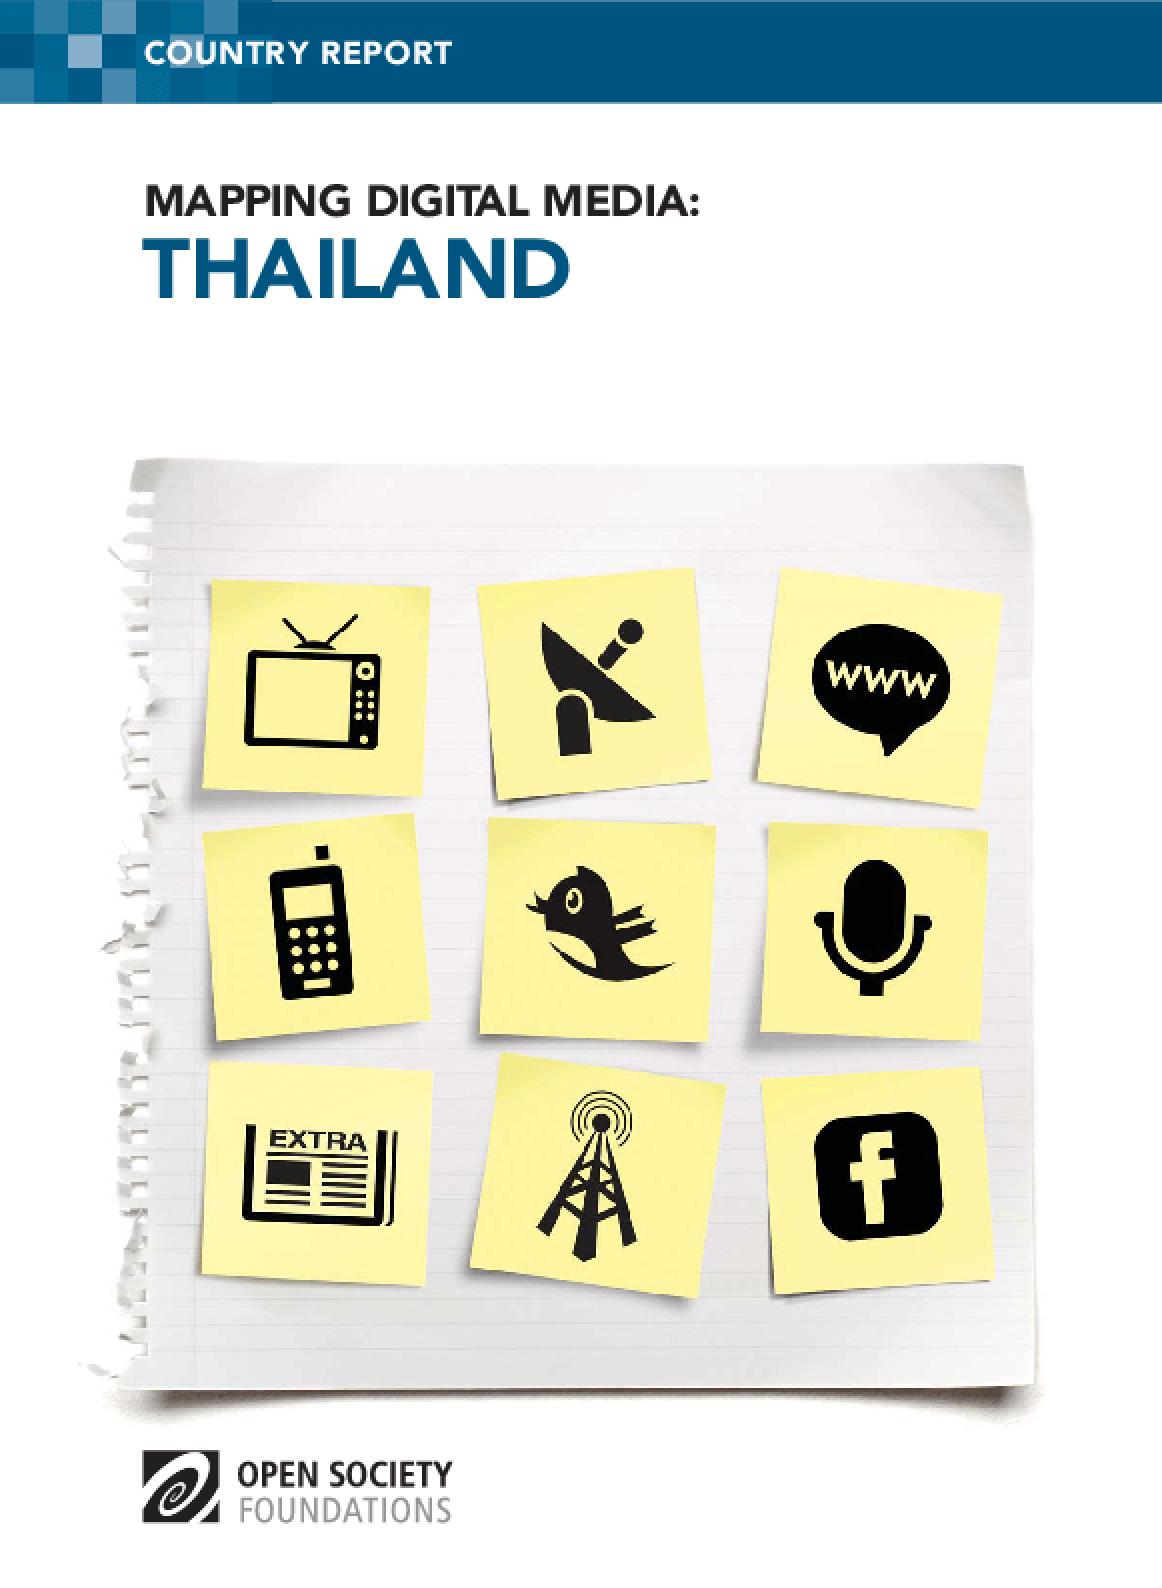 Mapping Digital Media: Thailand